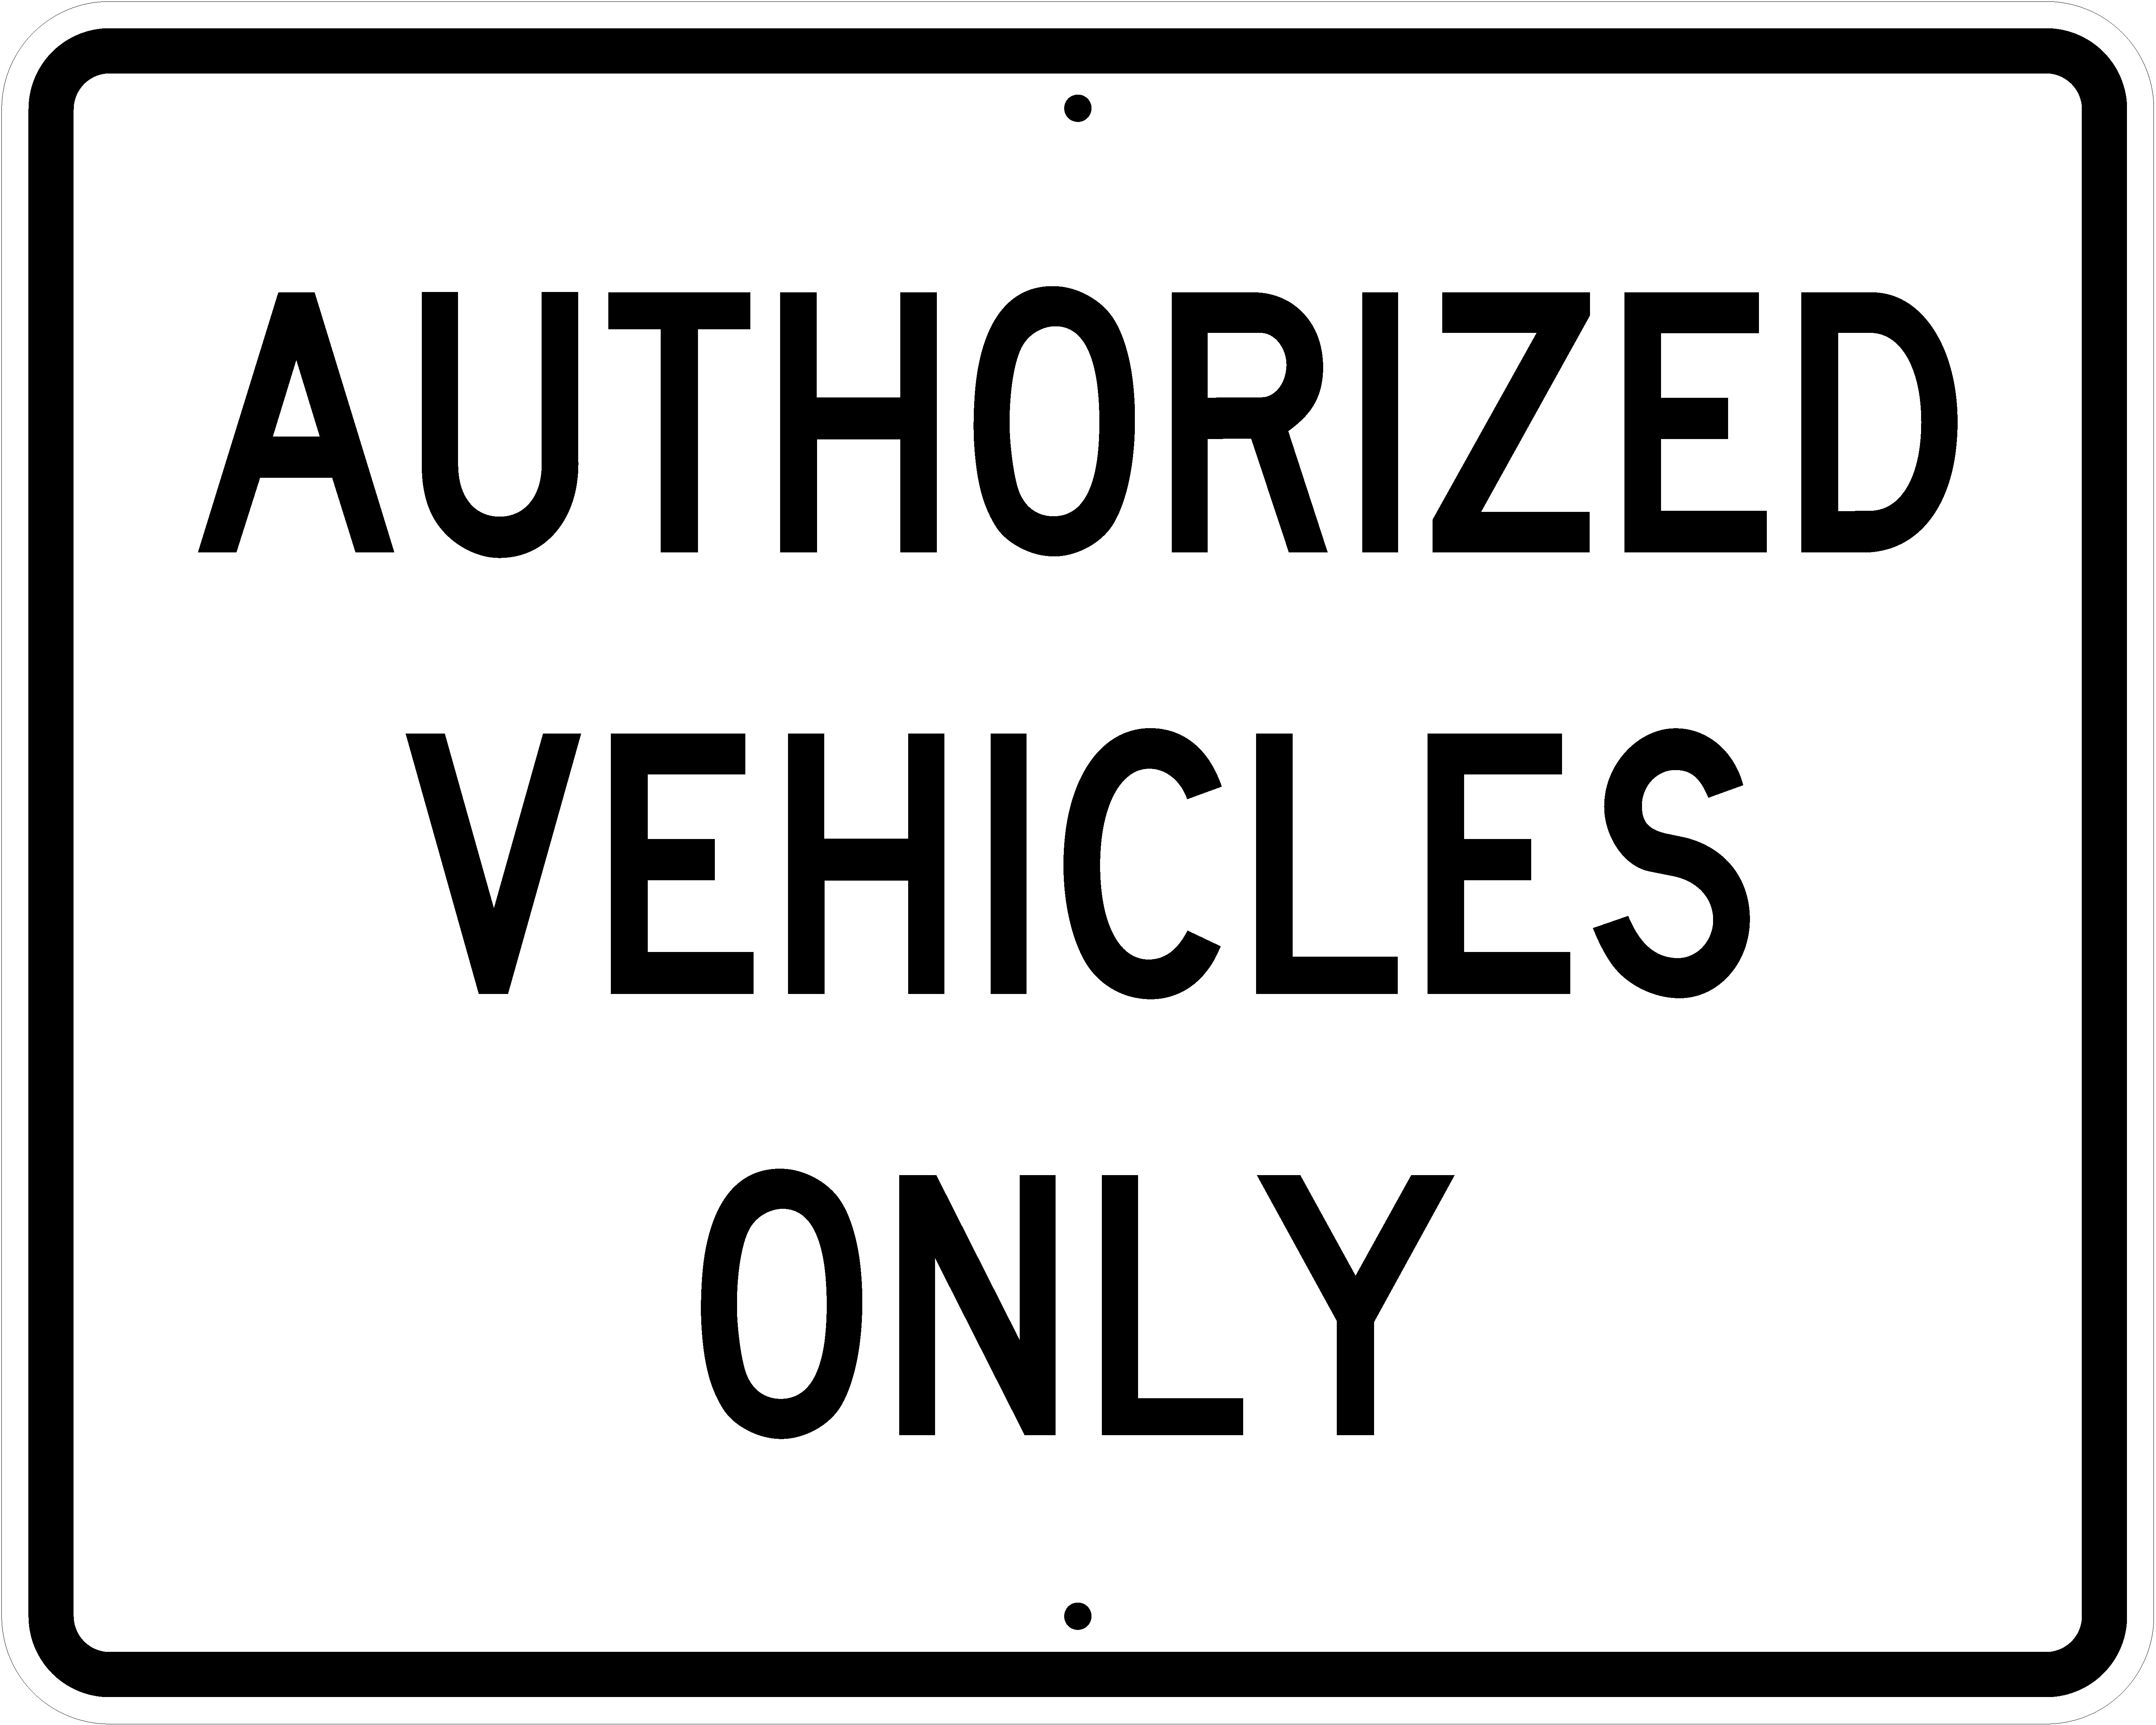 Authorized Vehicles Only R5-11